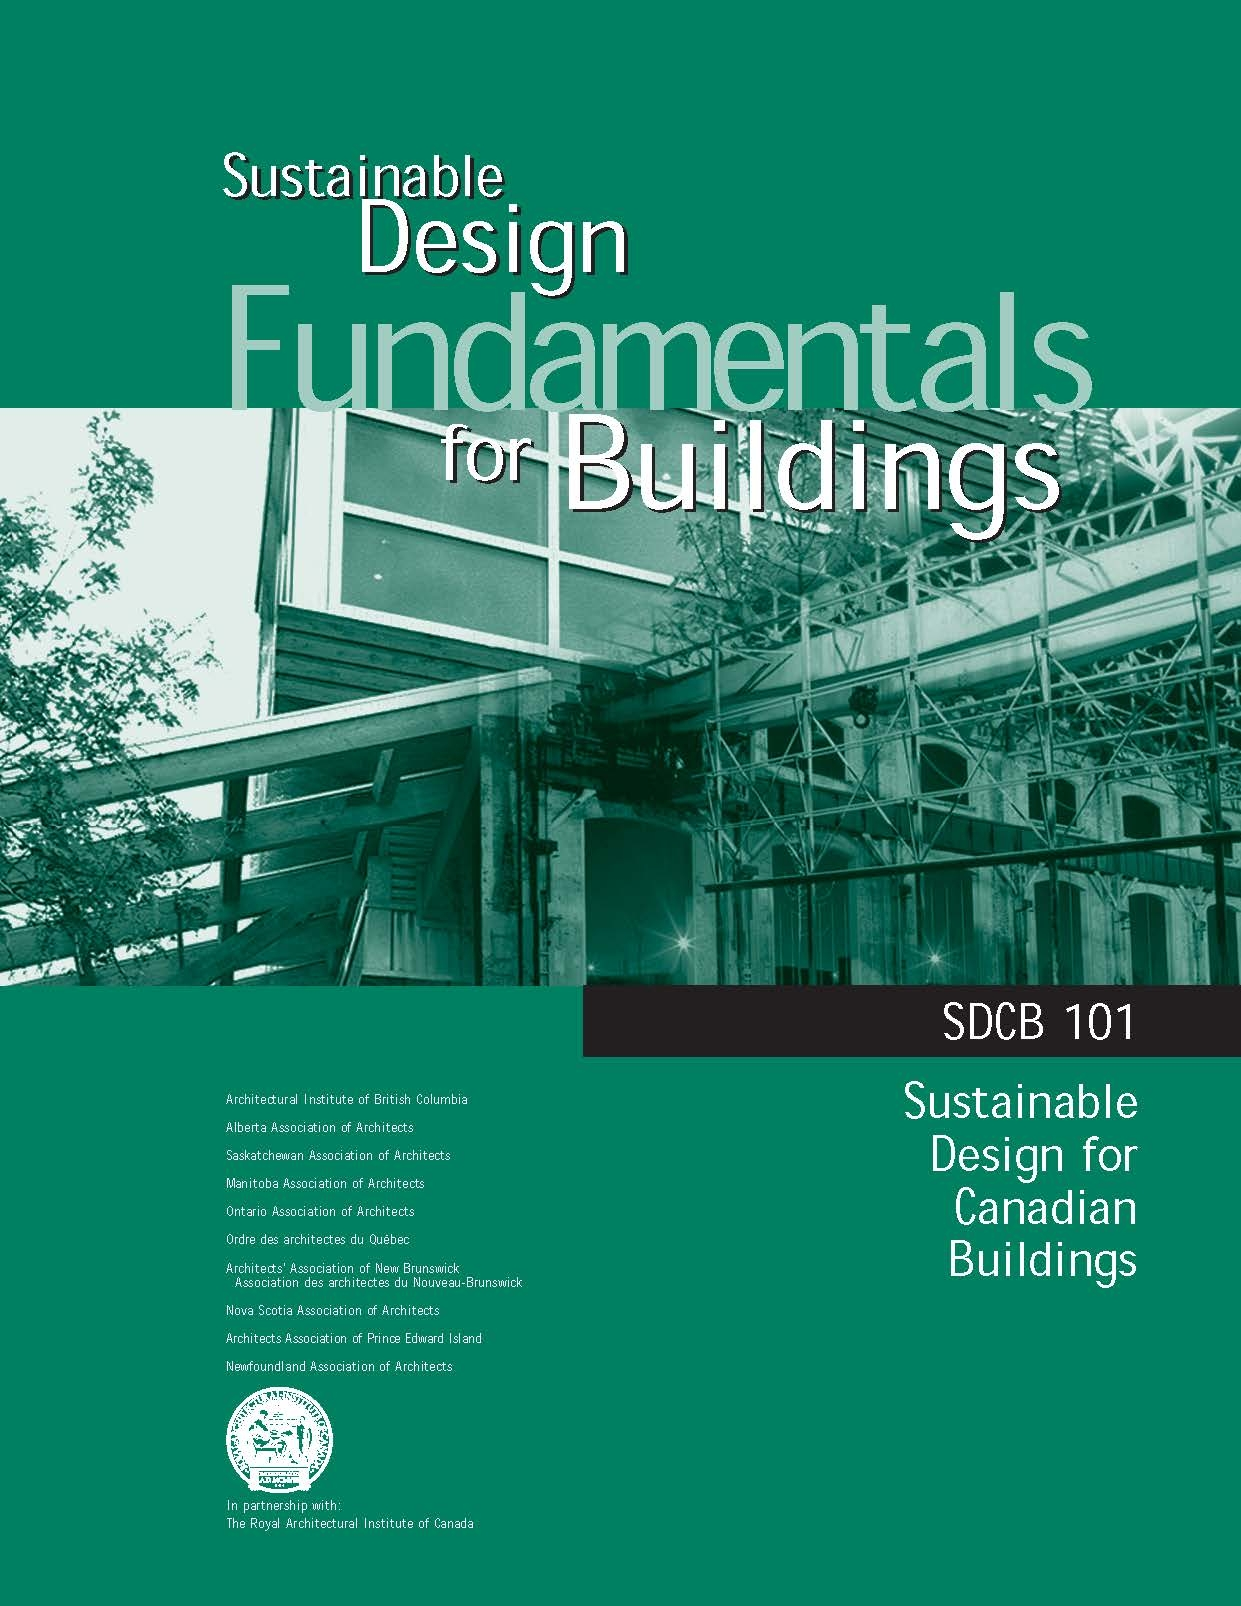 Sdcb 101 Sustainable Design Fundamentals For Buildings Royal Architectural Institute Of Canada